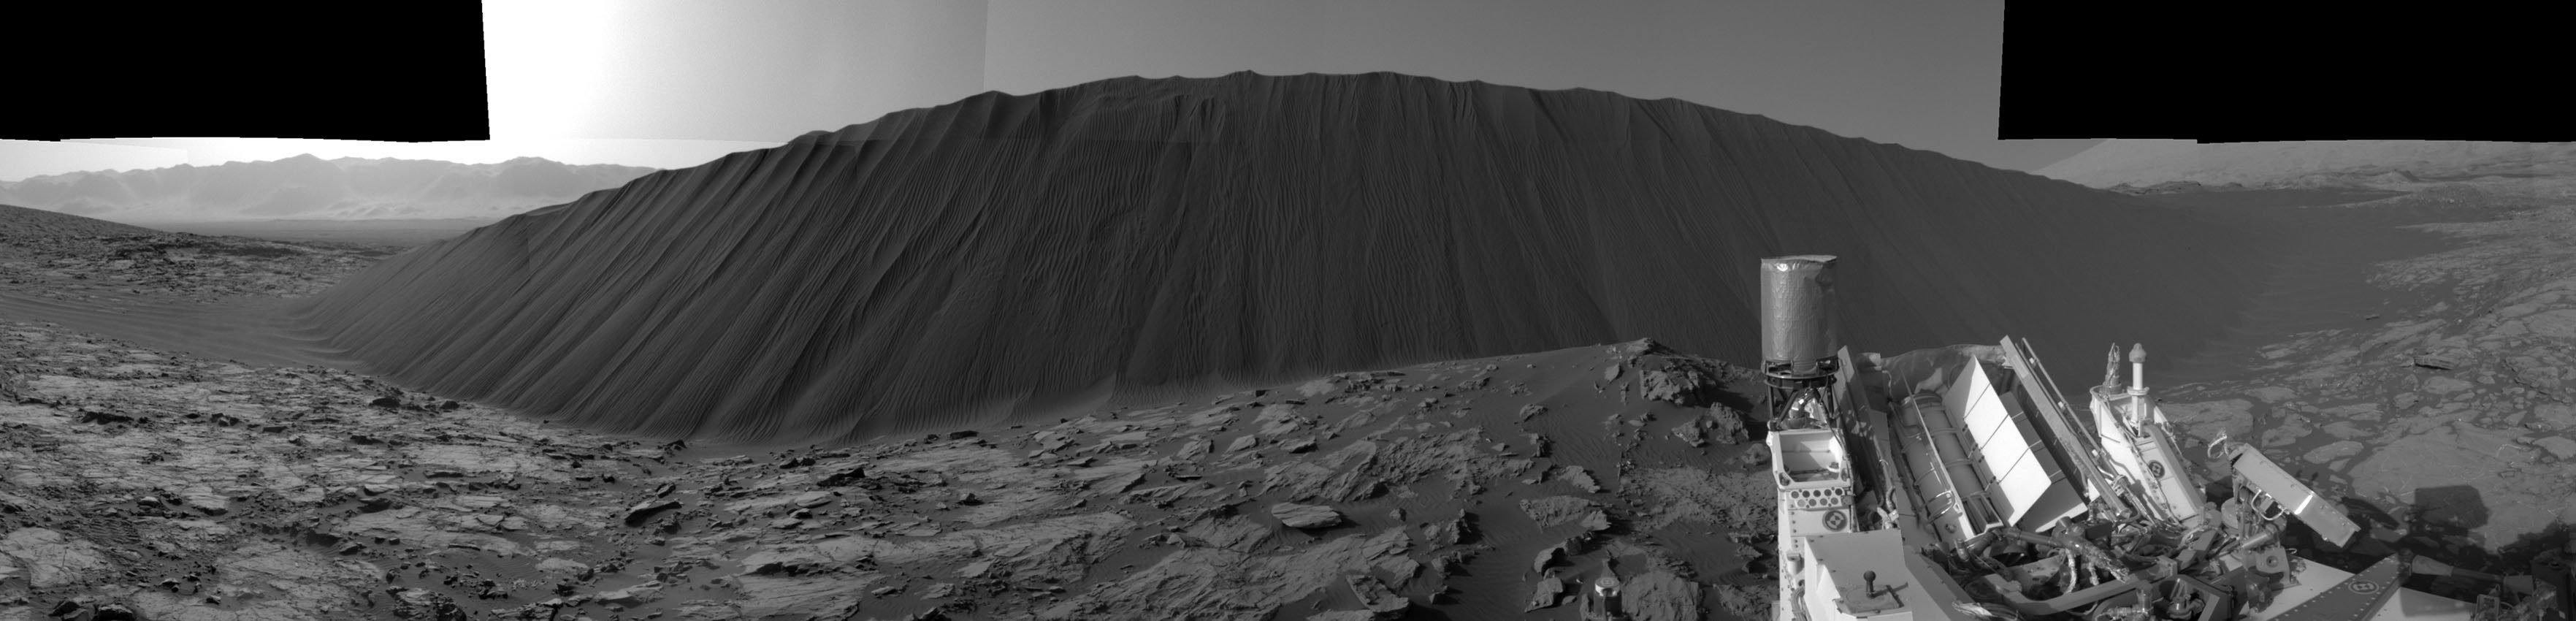 See Curiosity Cruise Around Gigantic Martian Dunes in These Stunning New Panoramas